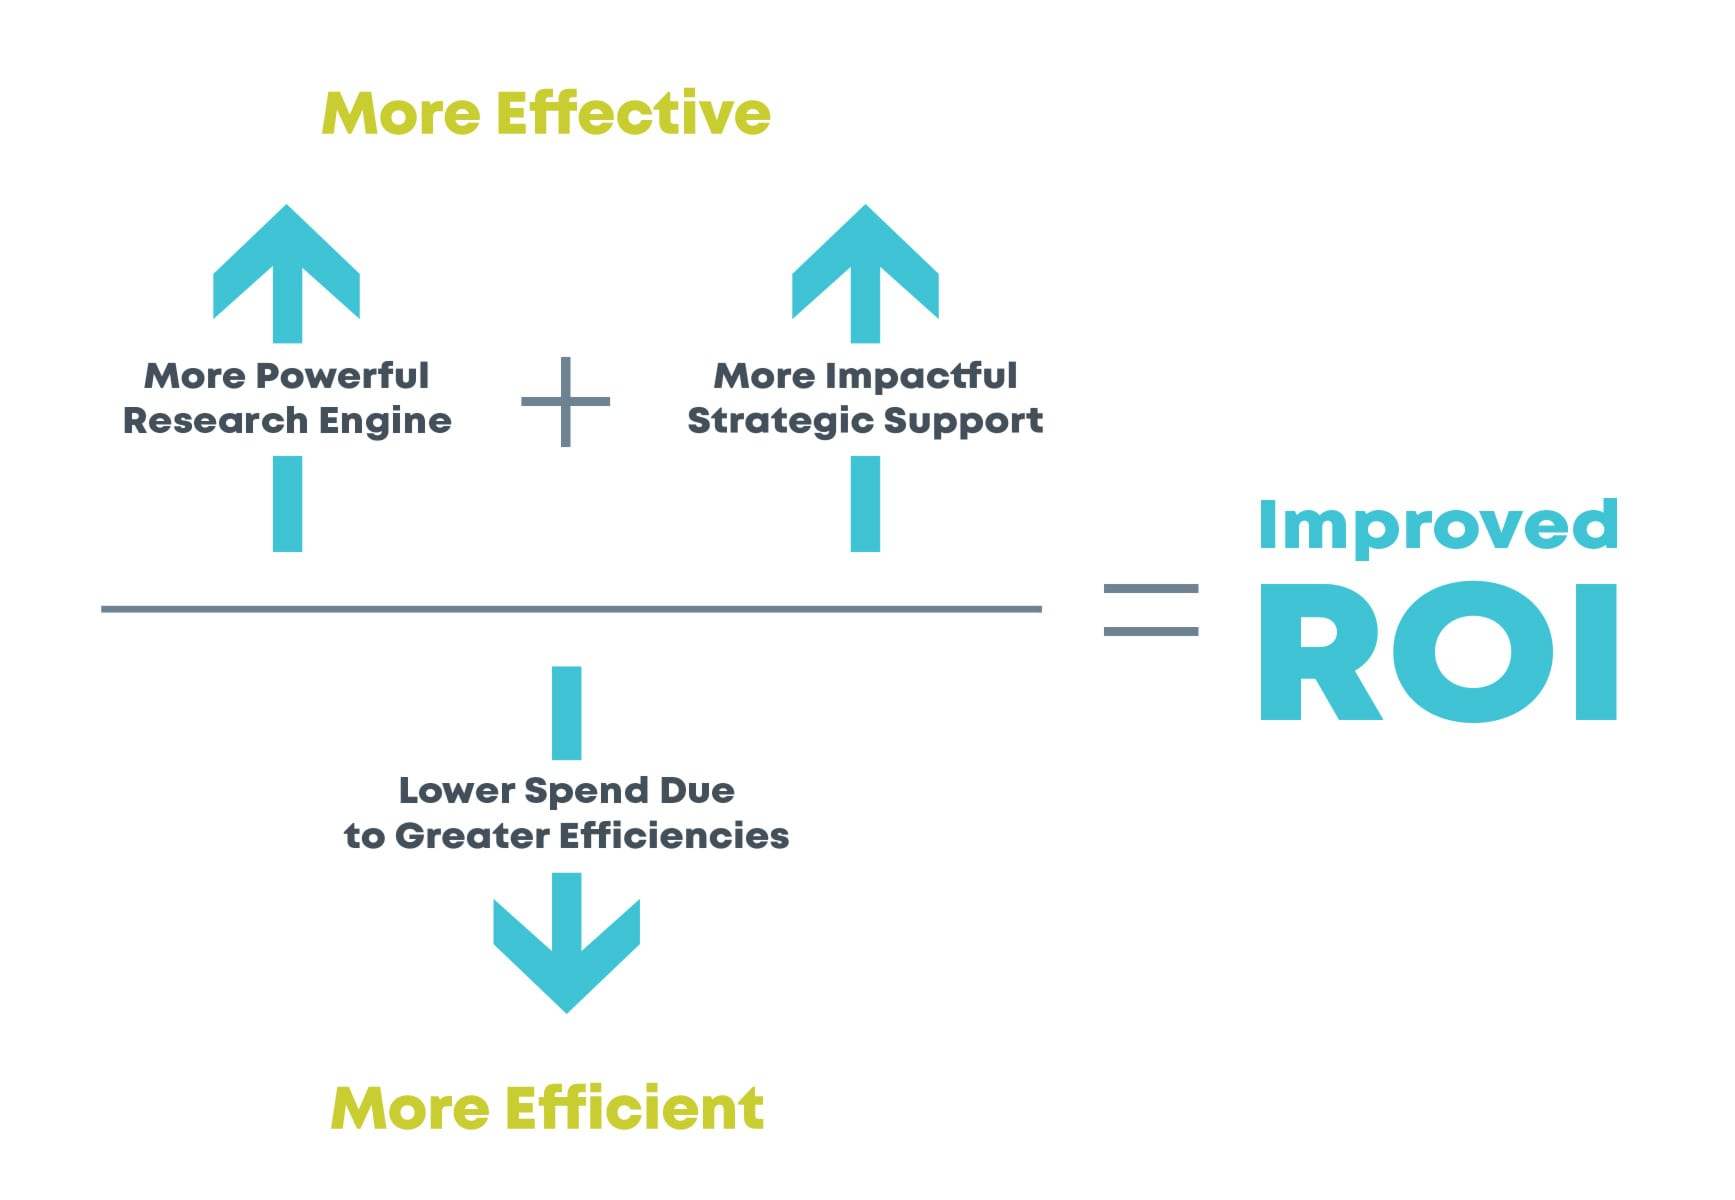 FinchSight Improved ROI